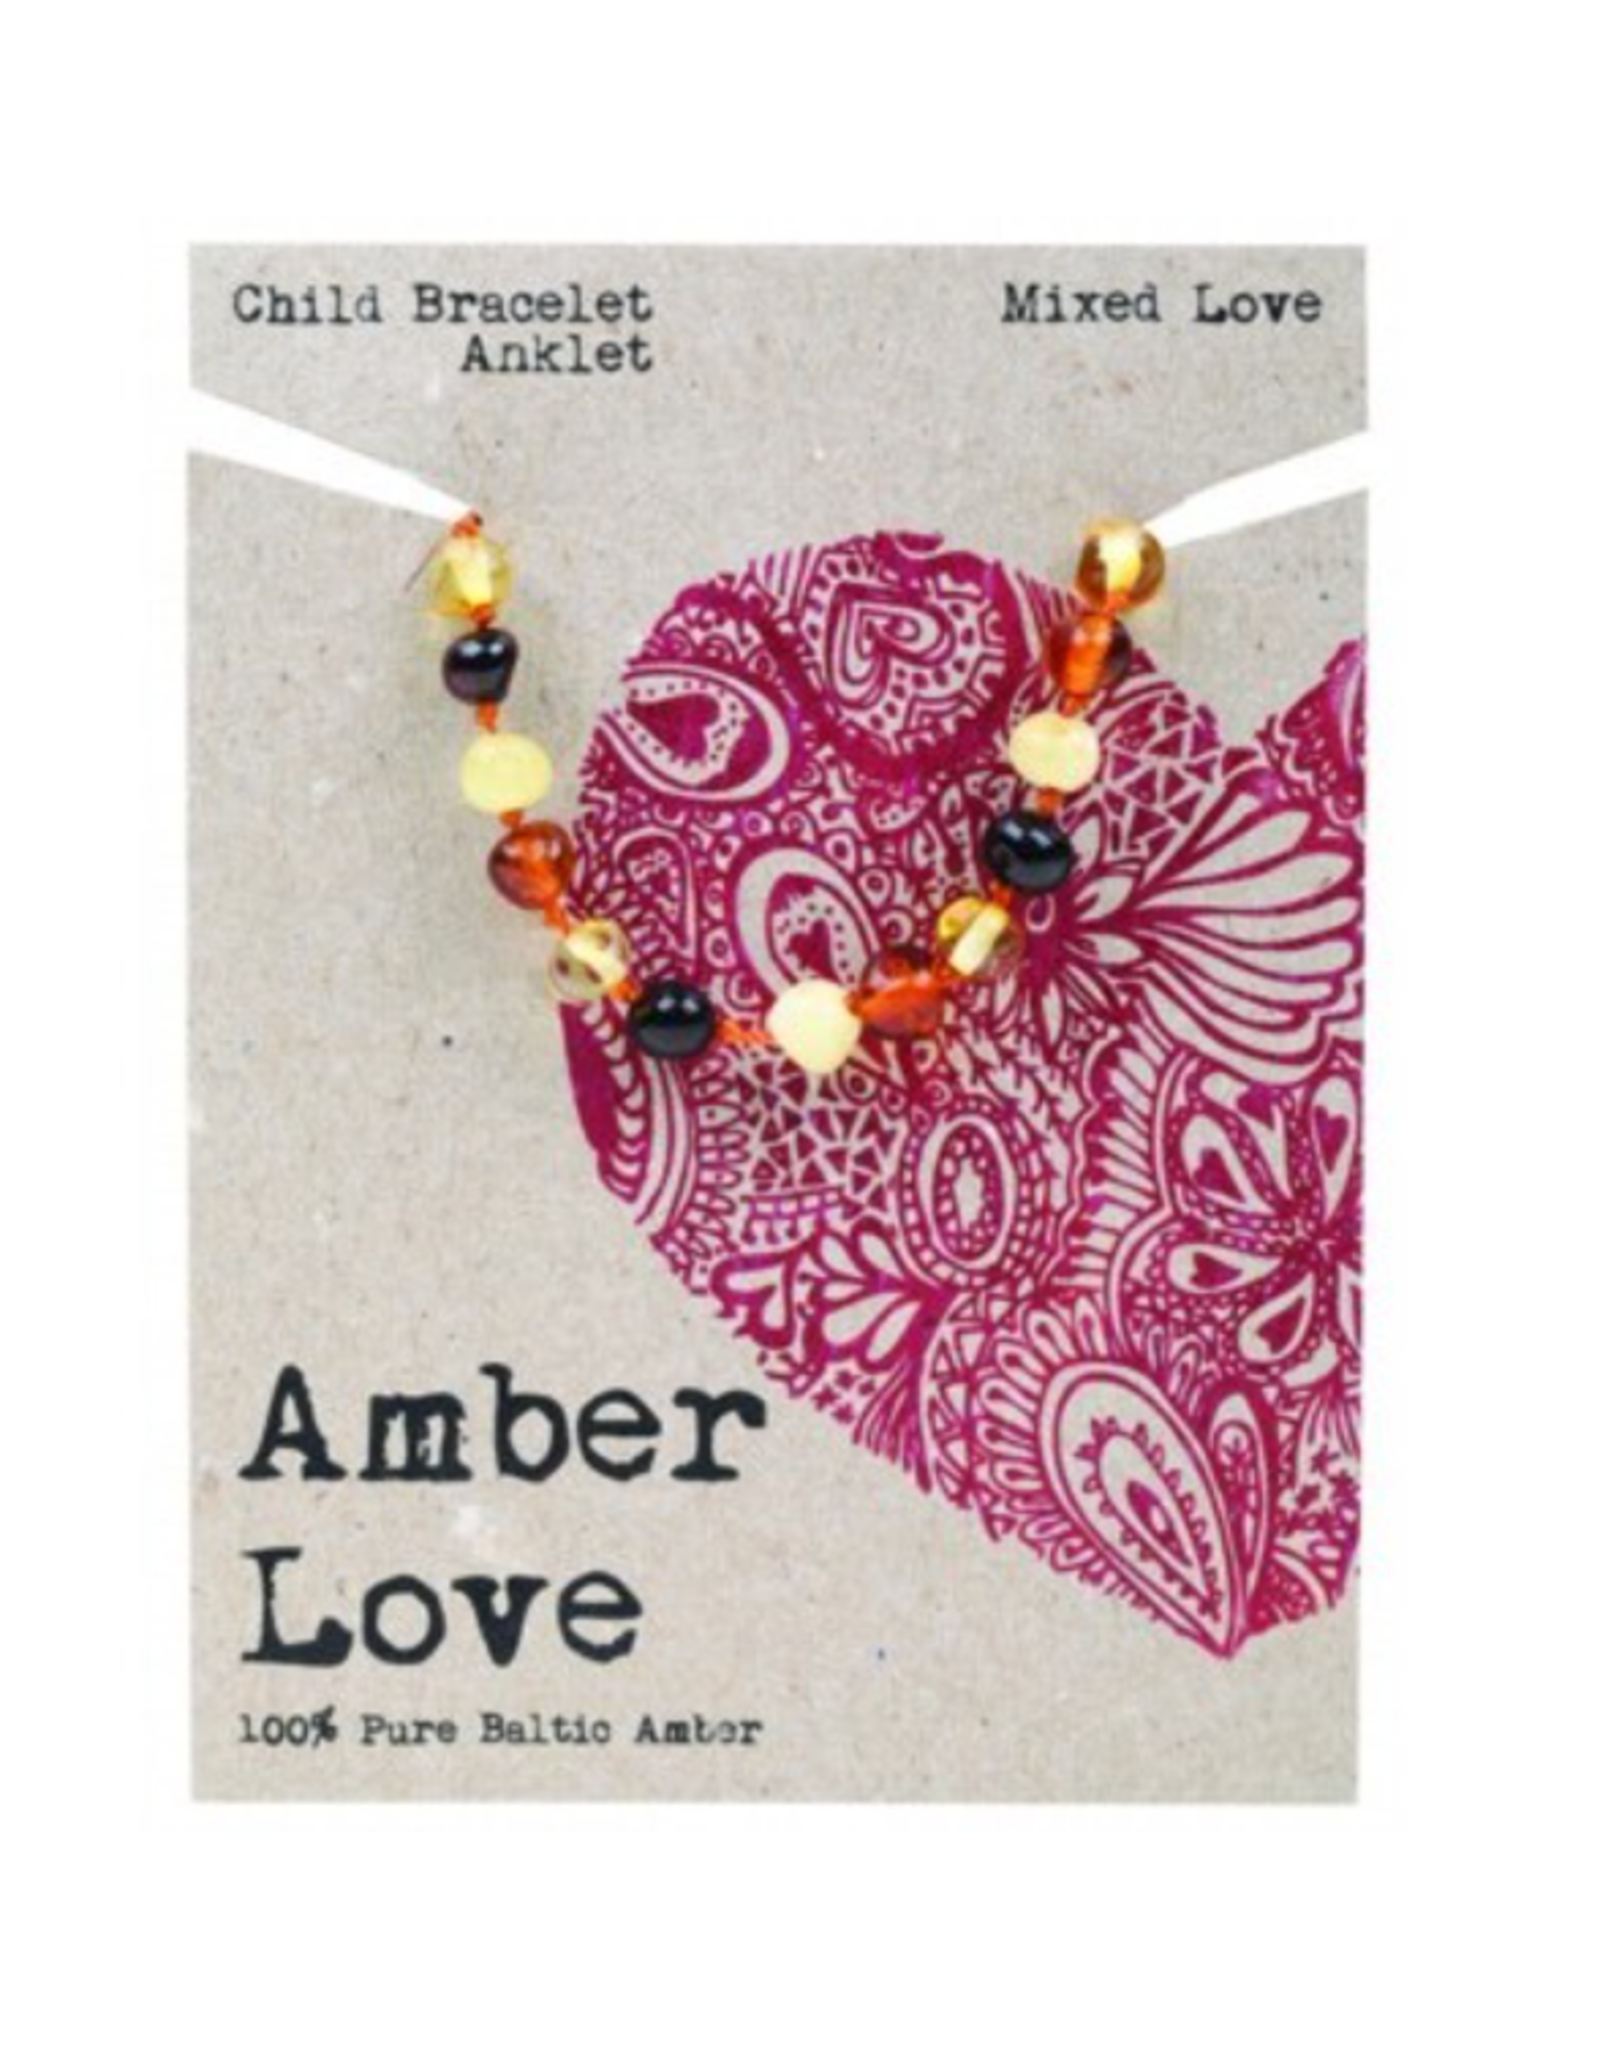 Amber Love Children's Bracelet/Anklet Baltic Amber - Mixed Love 14cm